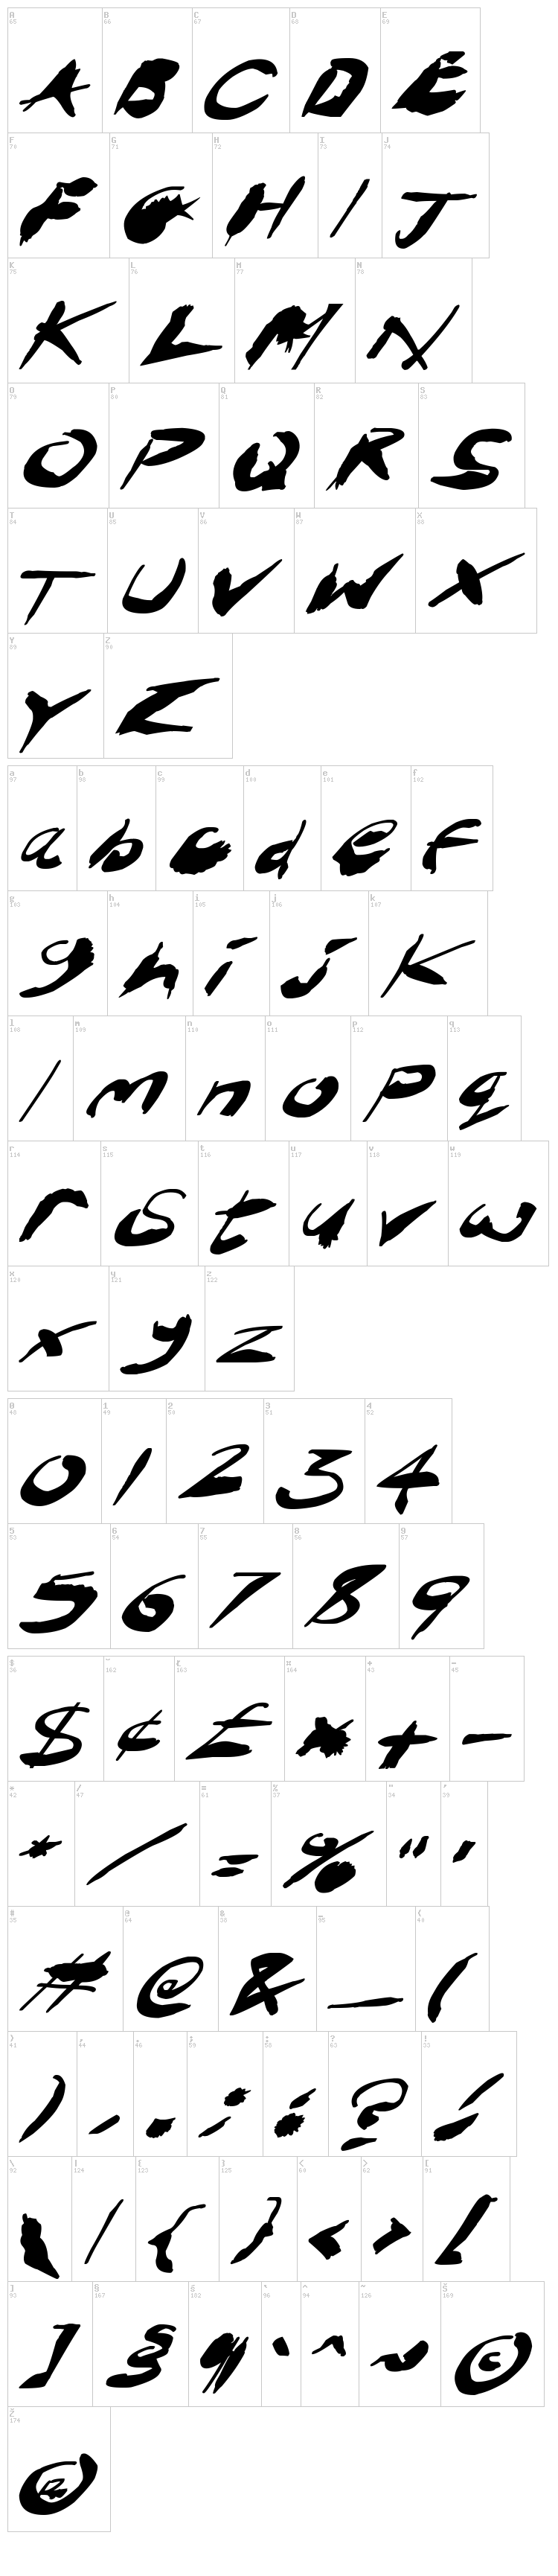 Crazy Ink Splats font map